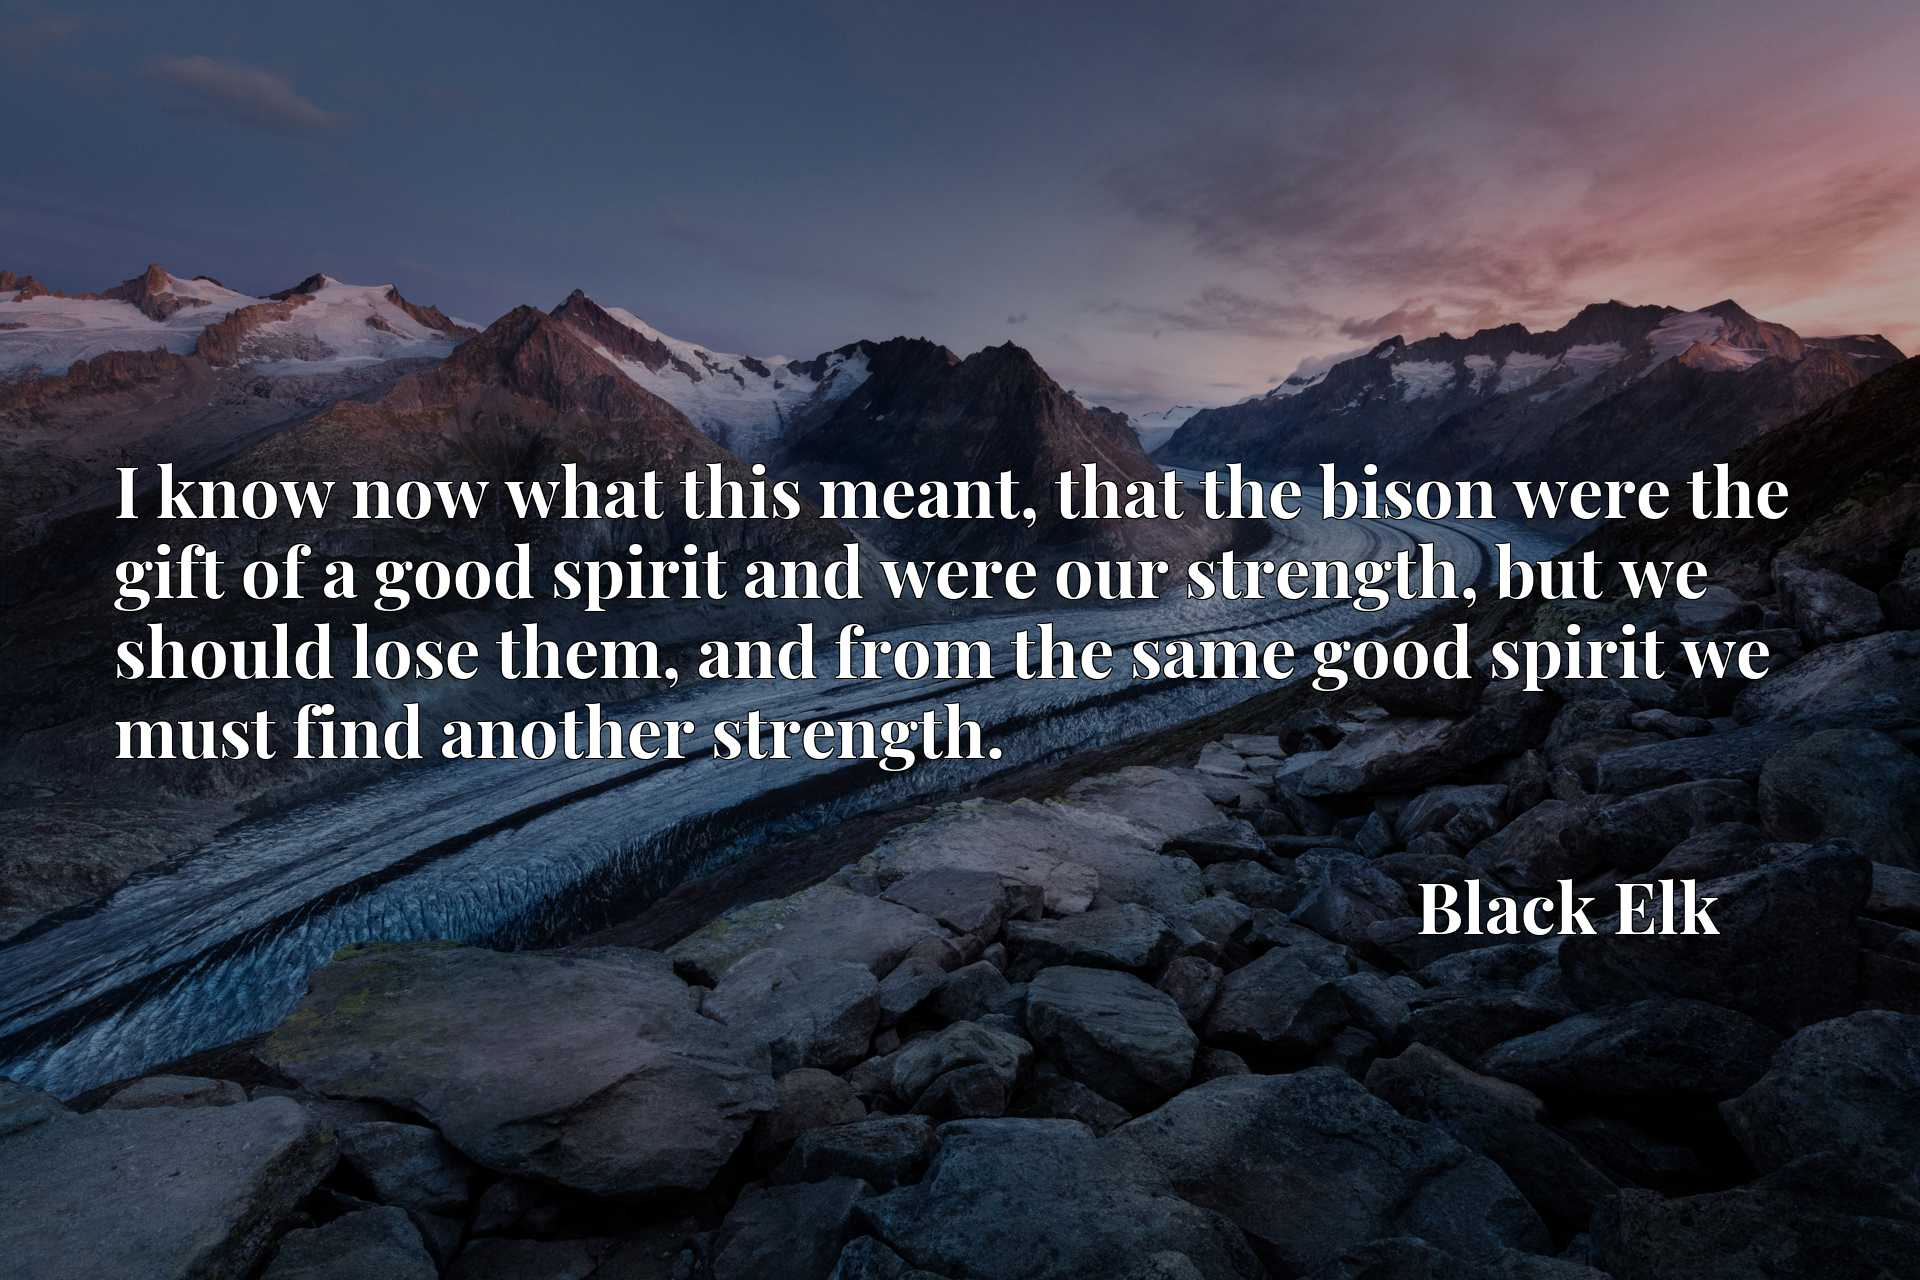 I know now what this meant, that the bison were the gift of a good spirit and were our strength, but we should lose them, and from the same good spirit we must find another strength.